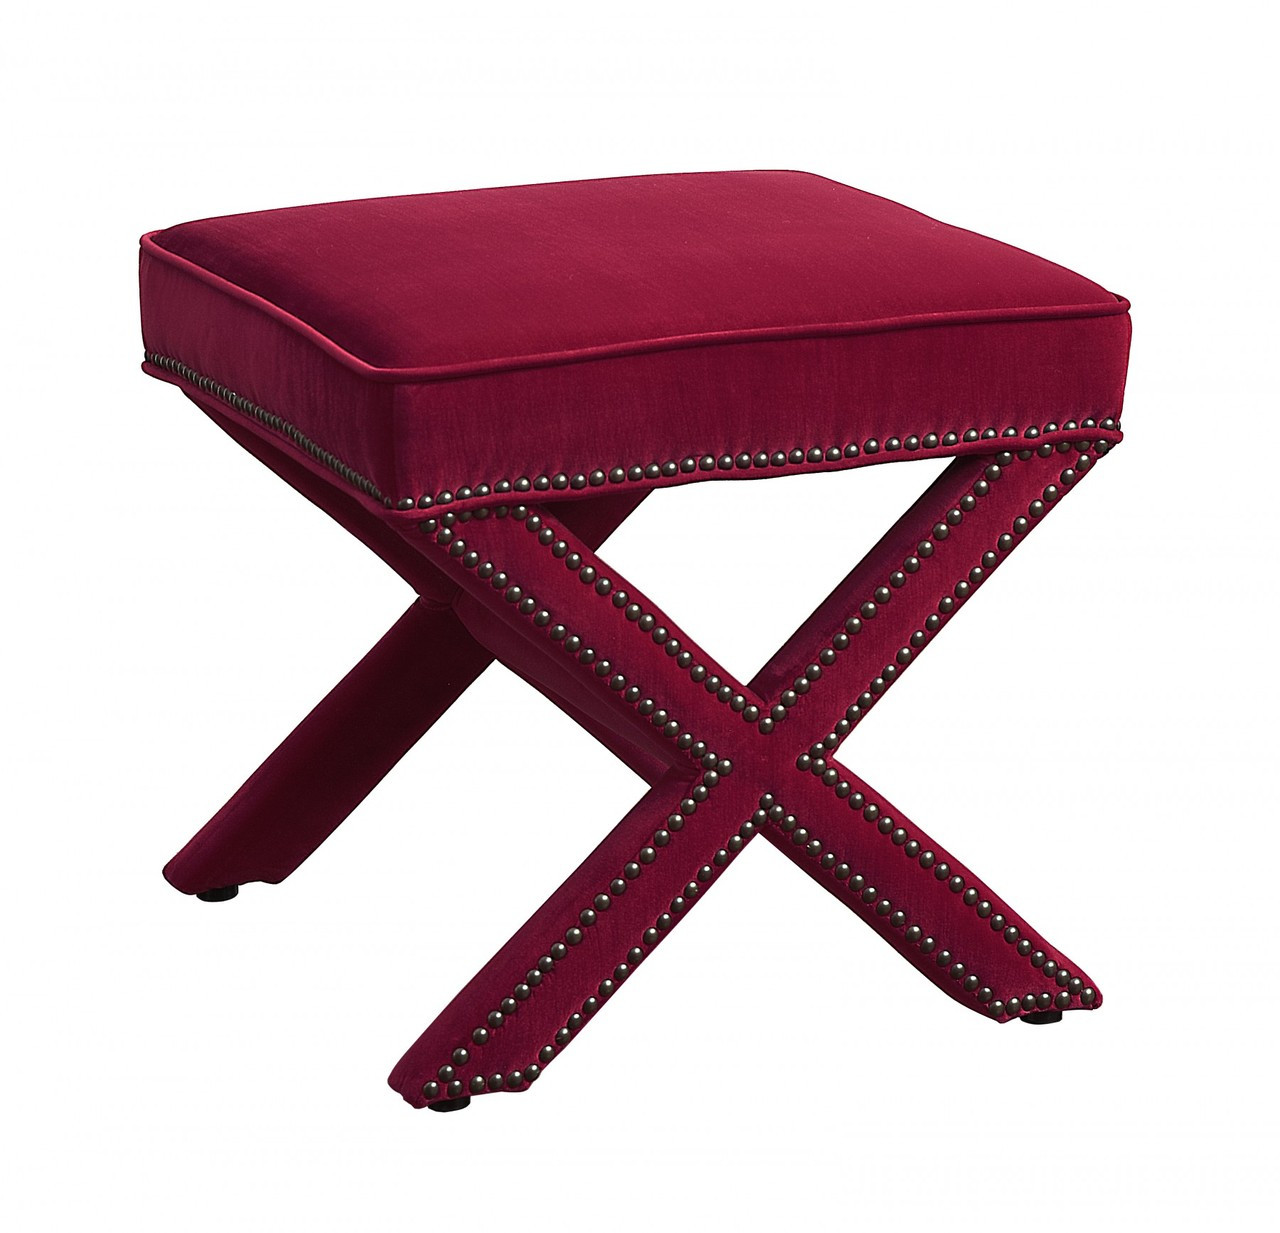 Reese Pink Velvet Square Ottoman Footstool Zin Home